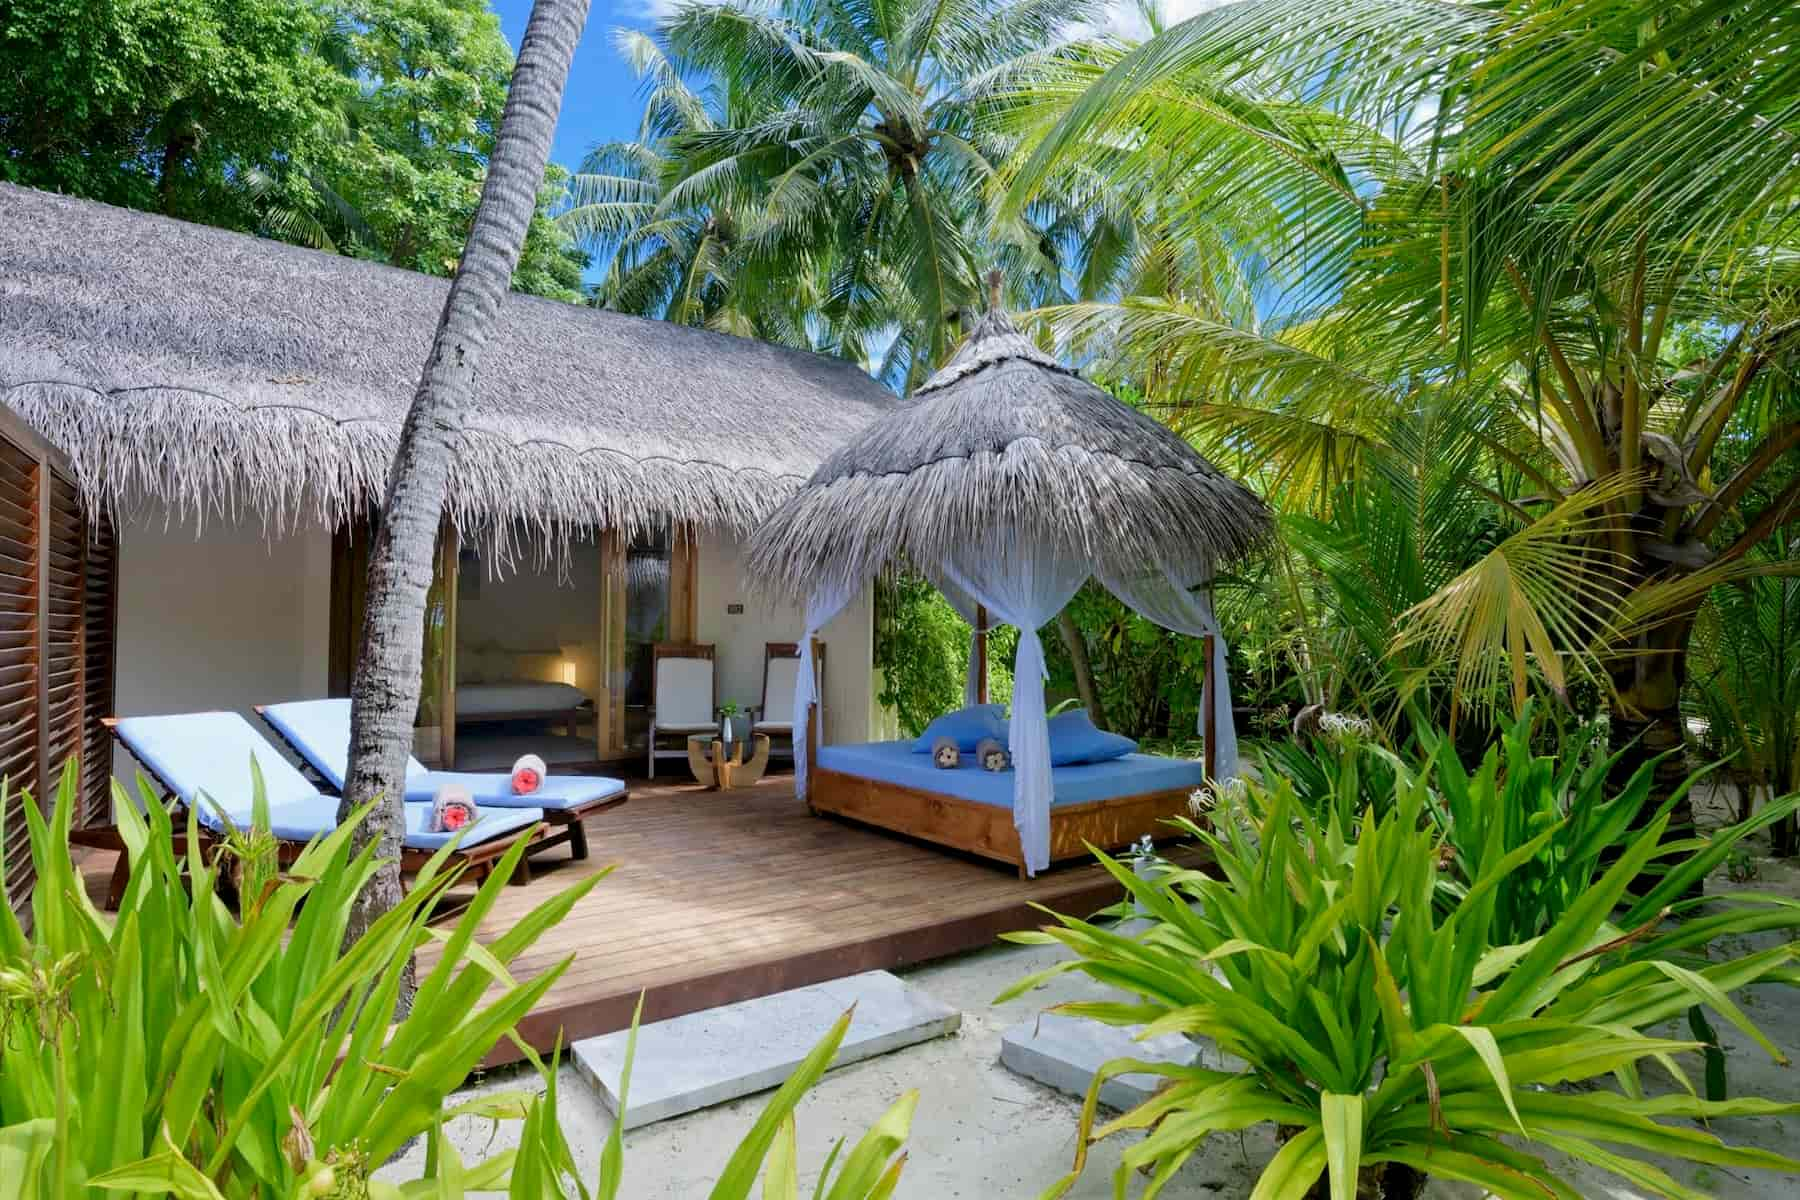 Resort Maldive Maafushivaru Island Resort beach villa